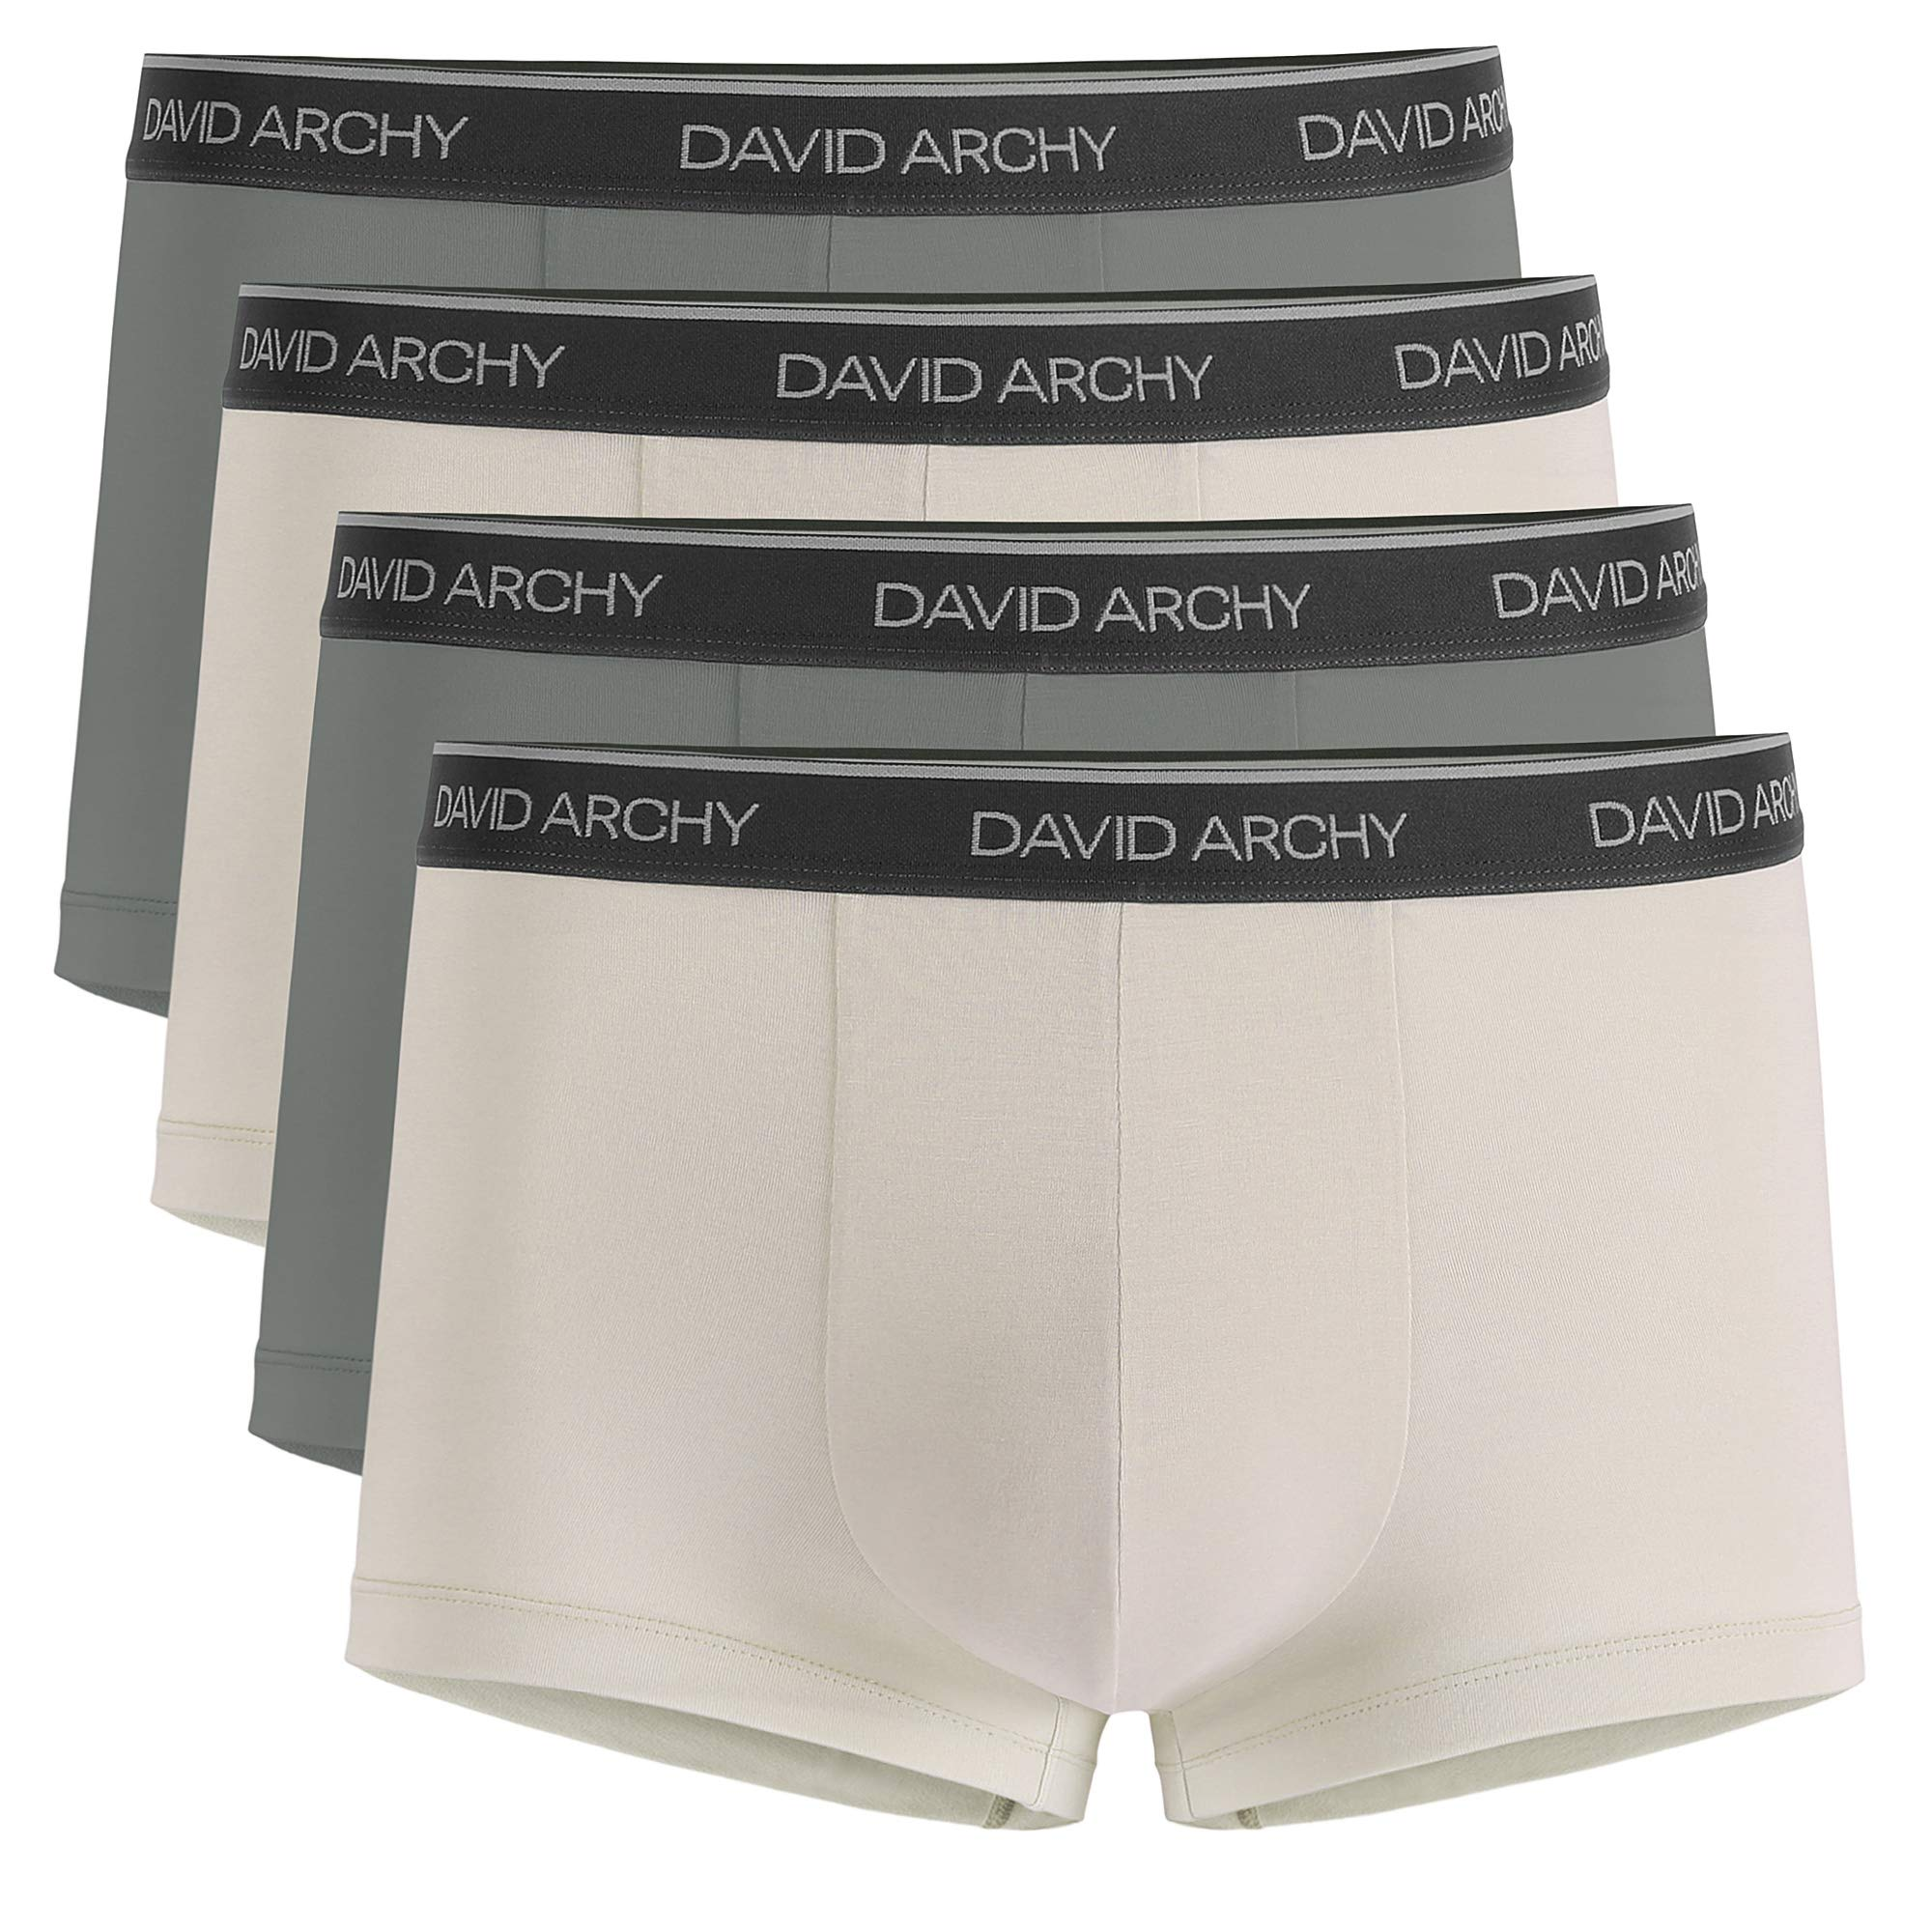 David Archy Men's 4 Pack Ultra Soft Comfy Breathable Bamboo Rayon Trunks Underwear No Fly (Gray/Khaki, L) by David Archy